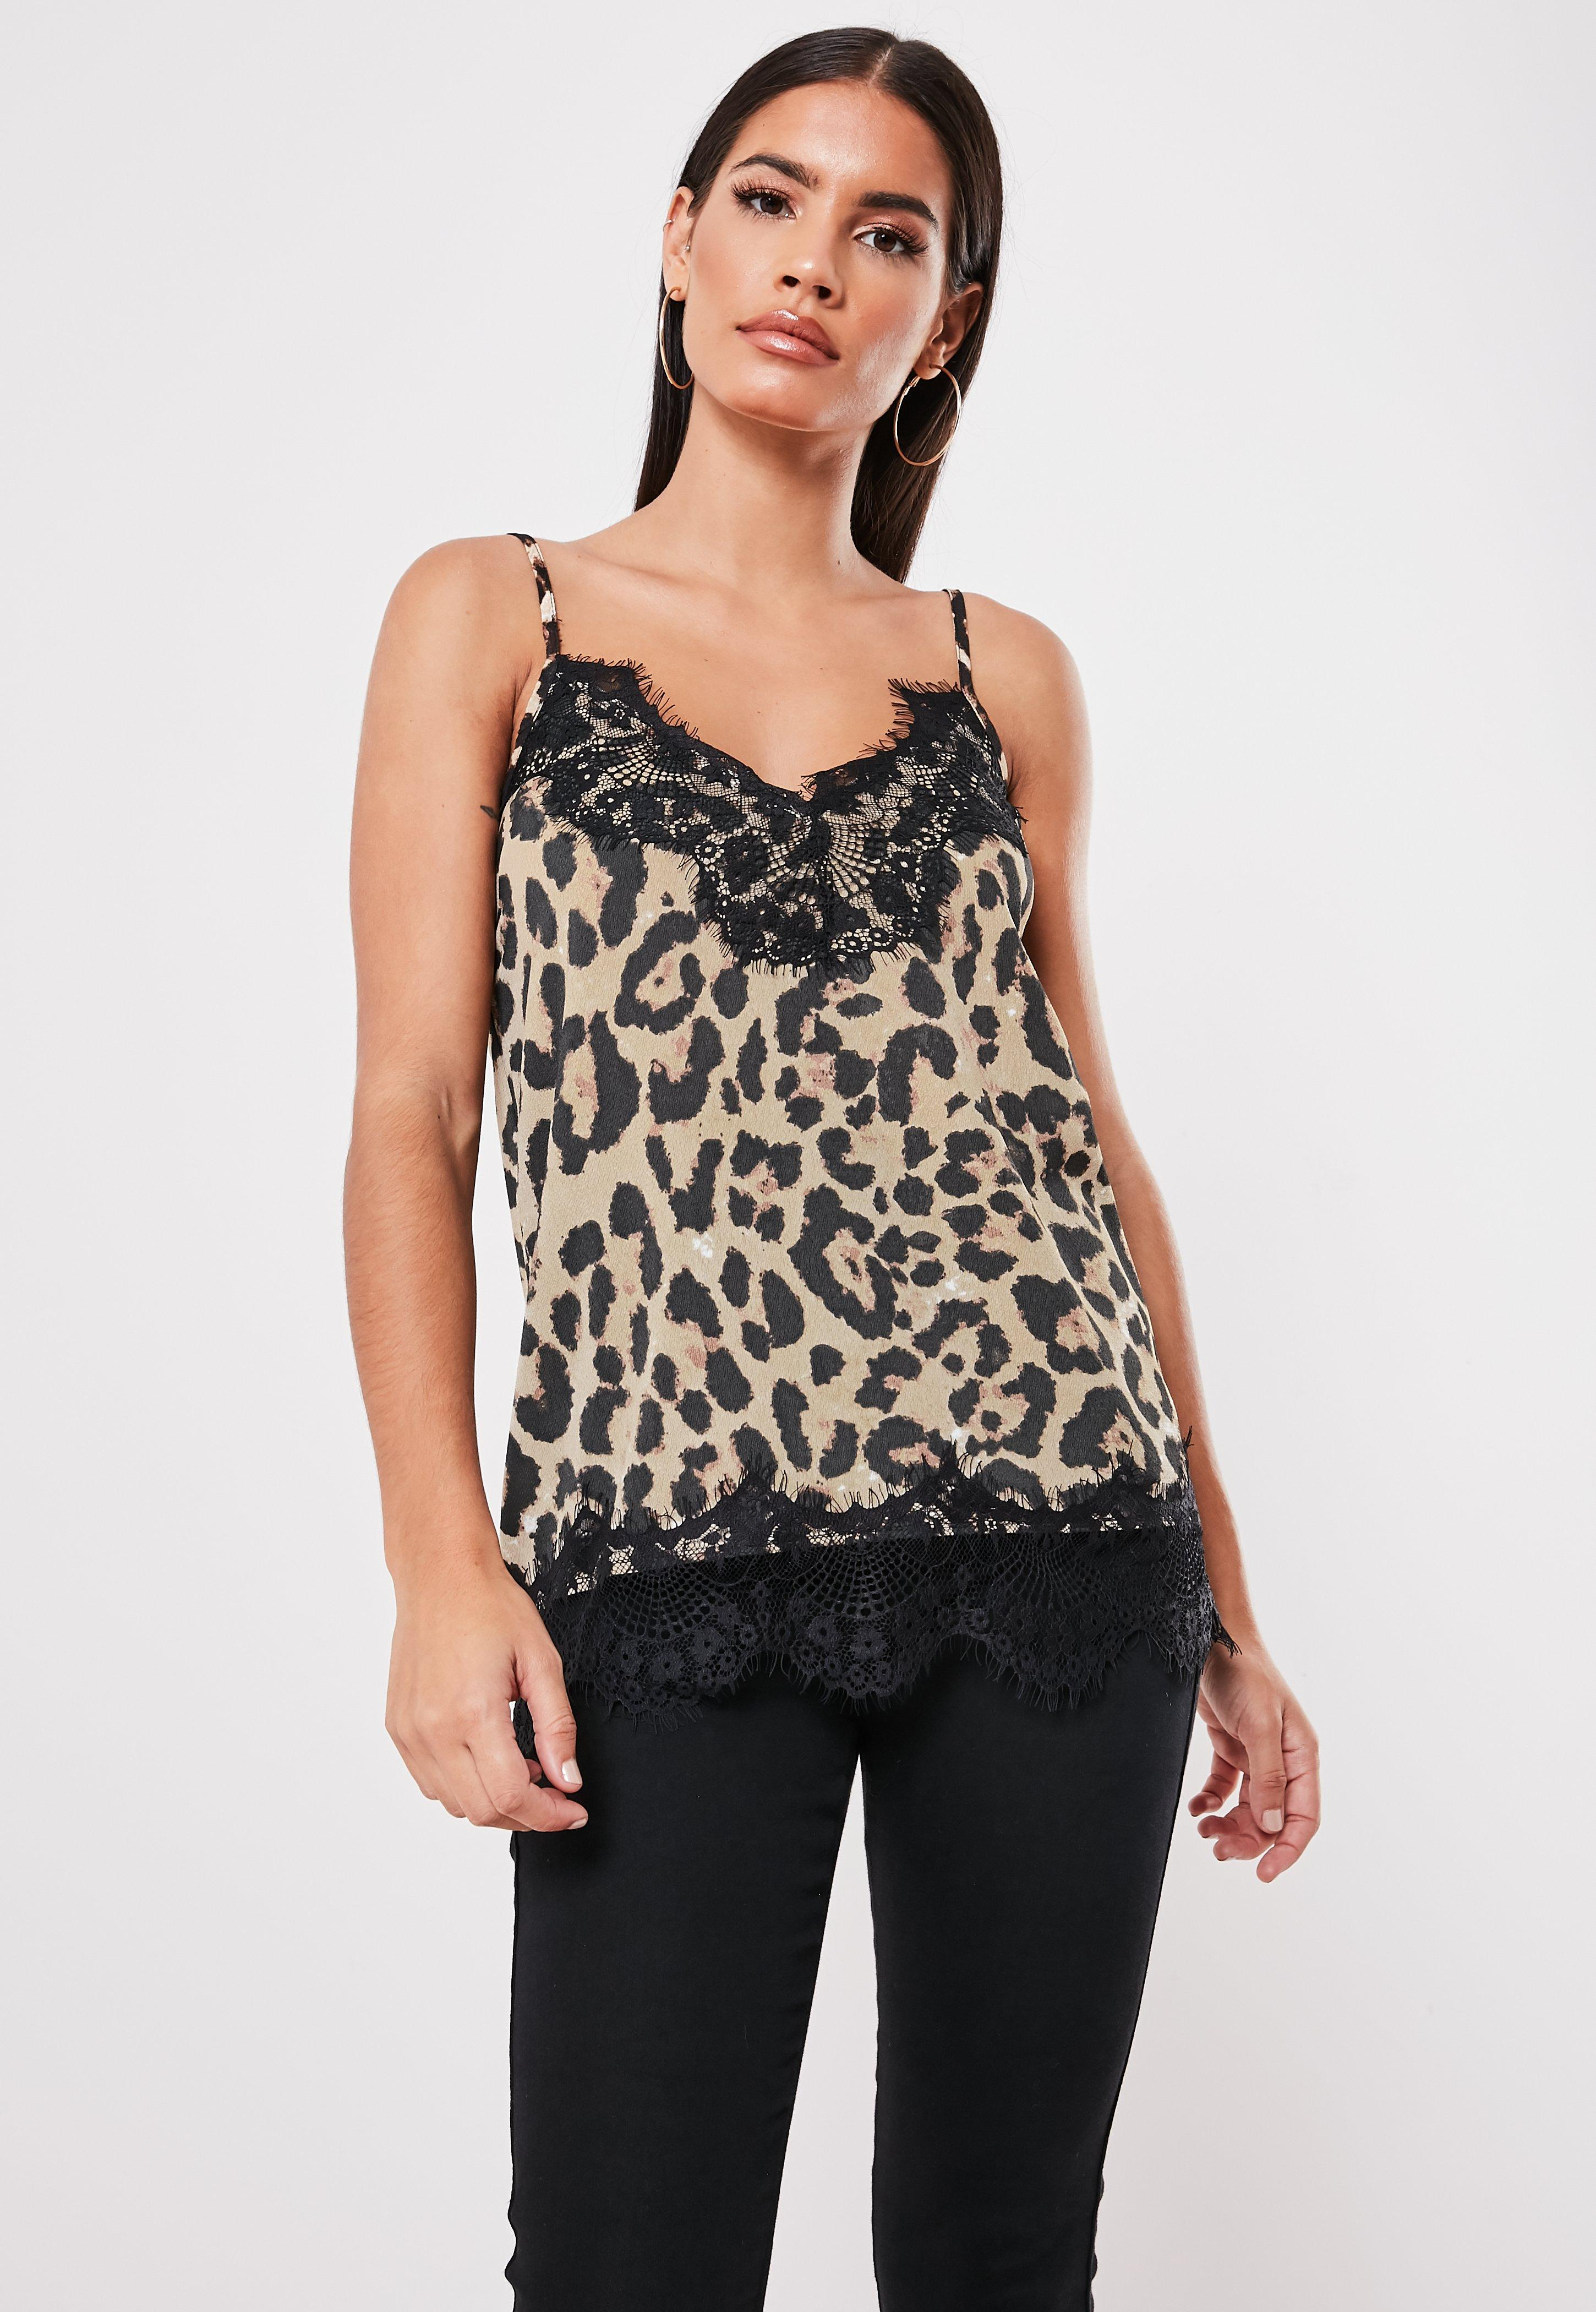 00f74691928a Animal Print Clothing